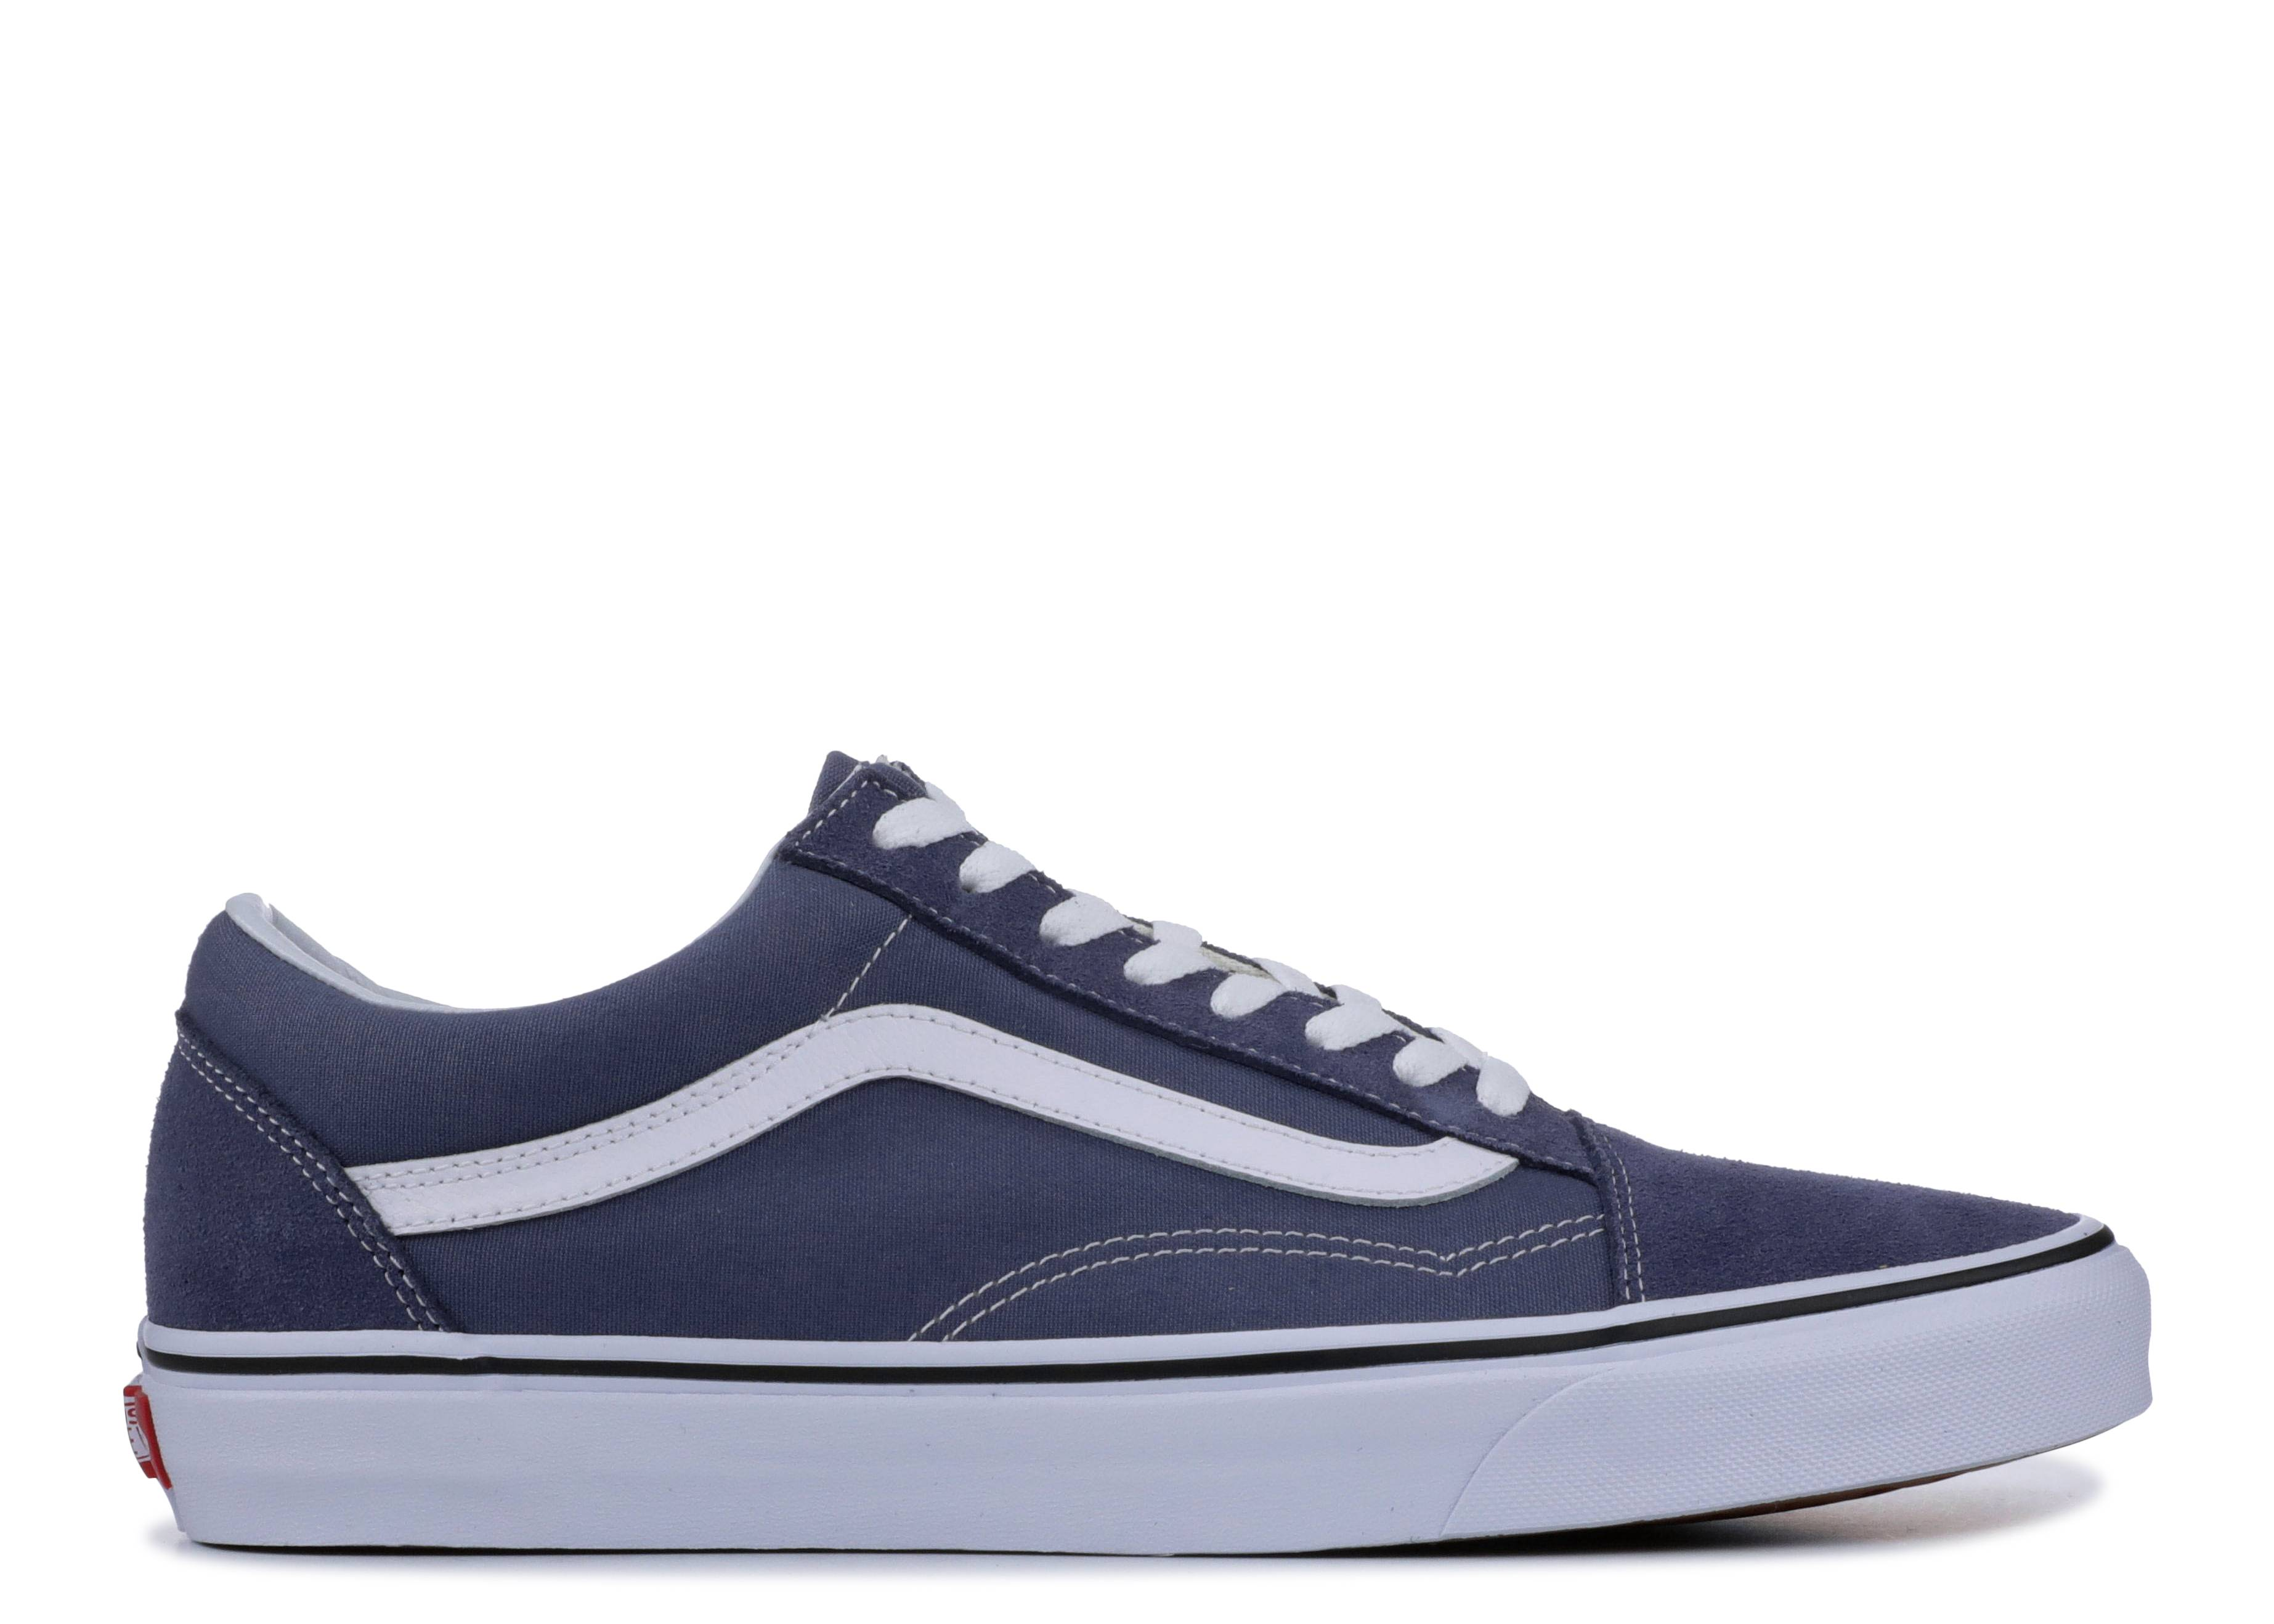 aa2a6fb364a OLD SKOOL - Vans - VN0A38G1UKY - grisaille  true grisaille